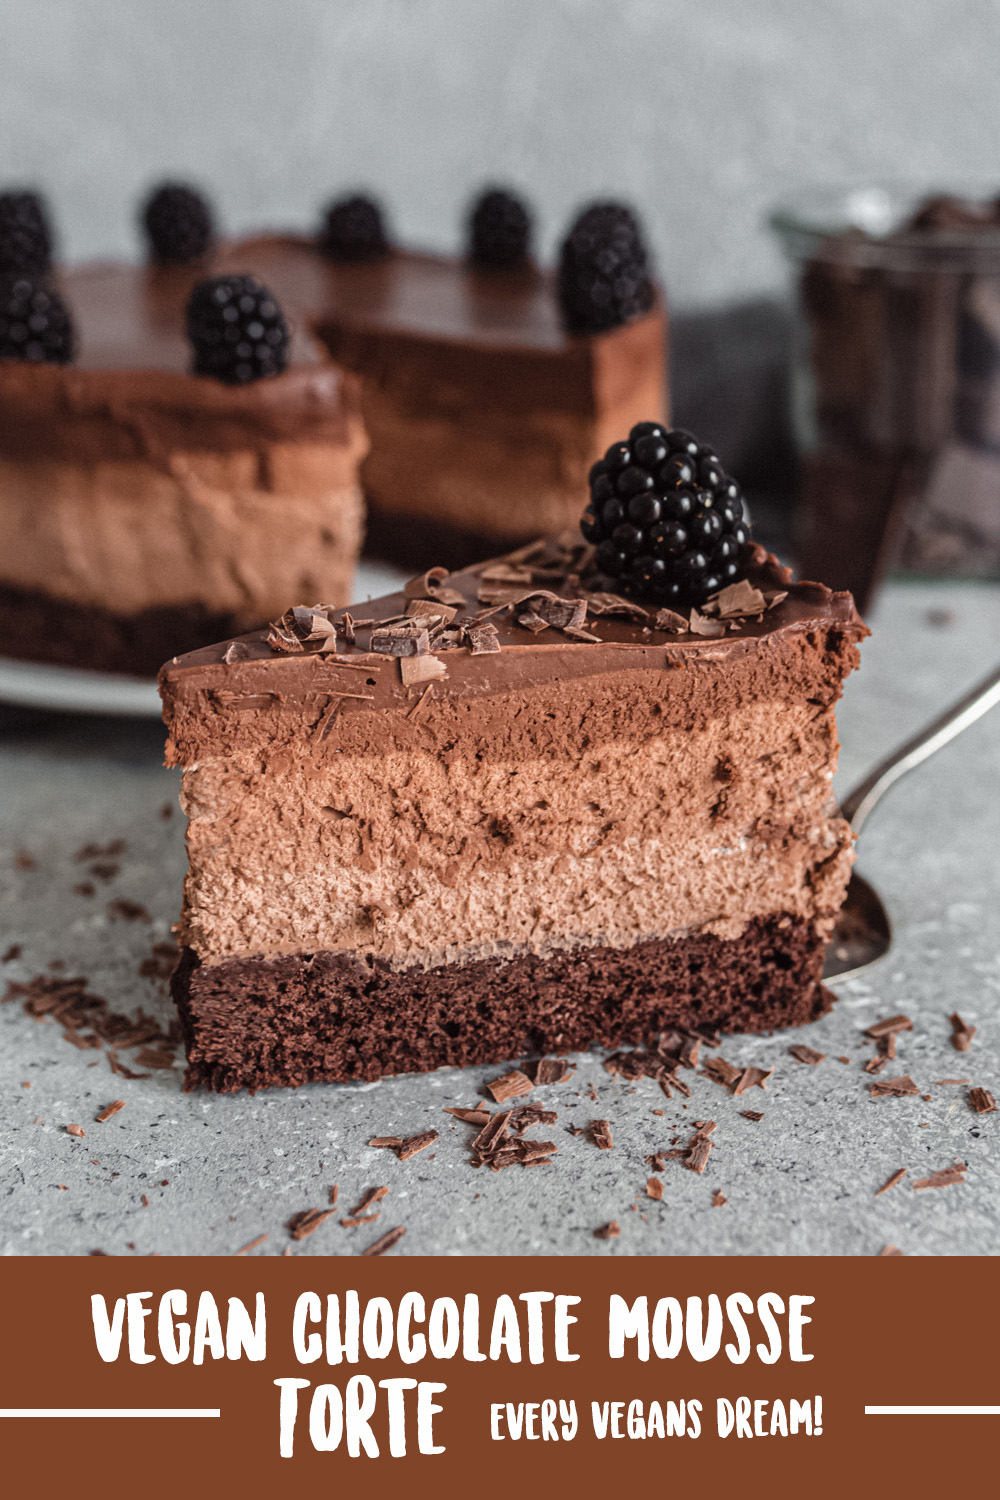 Vegan Chocolate Mousse Torte